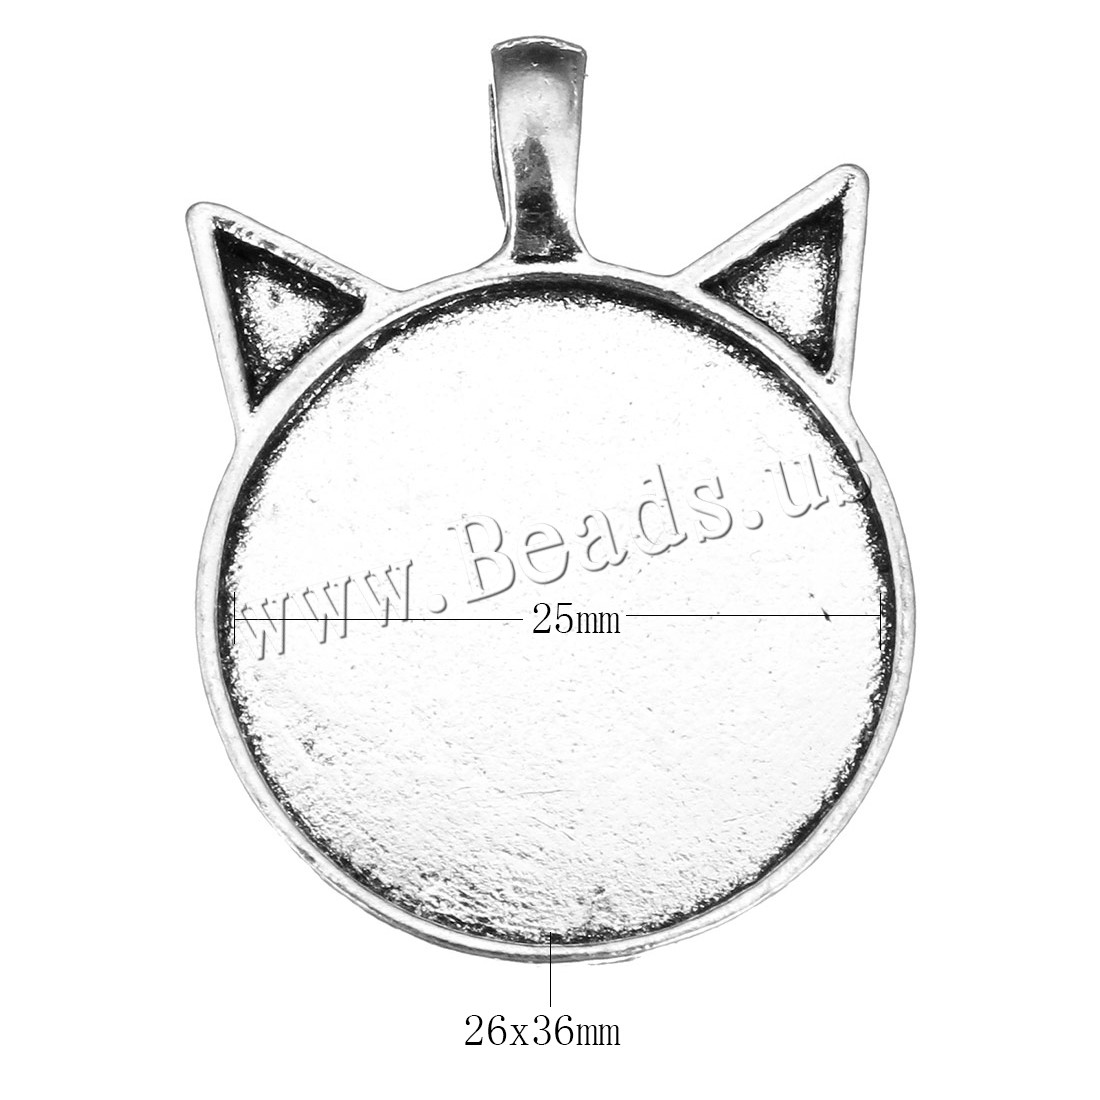 Buy Zinc Alloy Pendant Rhinestone Setting antique silver color plated nickel lead & cadmium free 26x36x6mm Hole:Approx 3x5mm Inner Diameter:Approx 25mm 10 Sold Lot